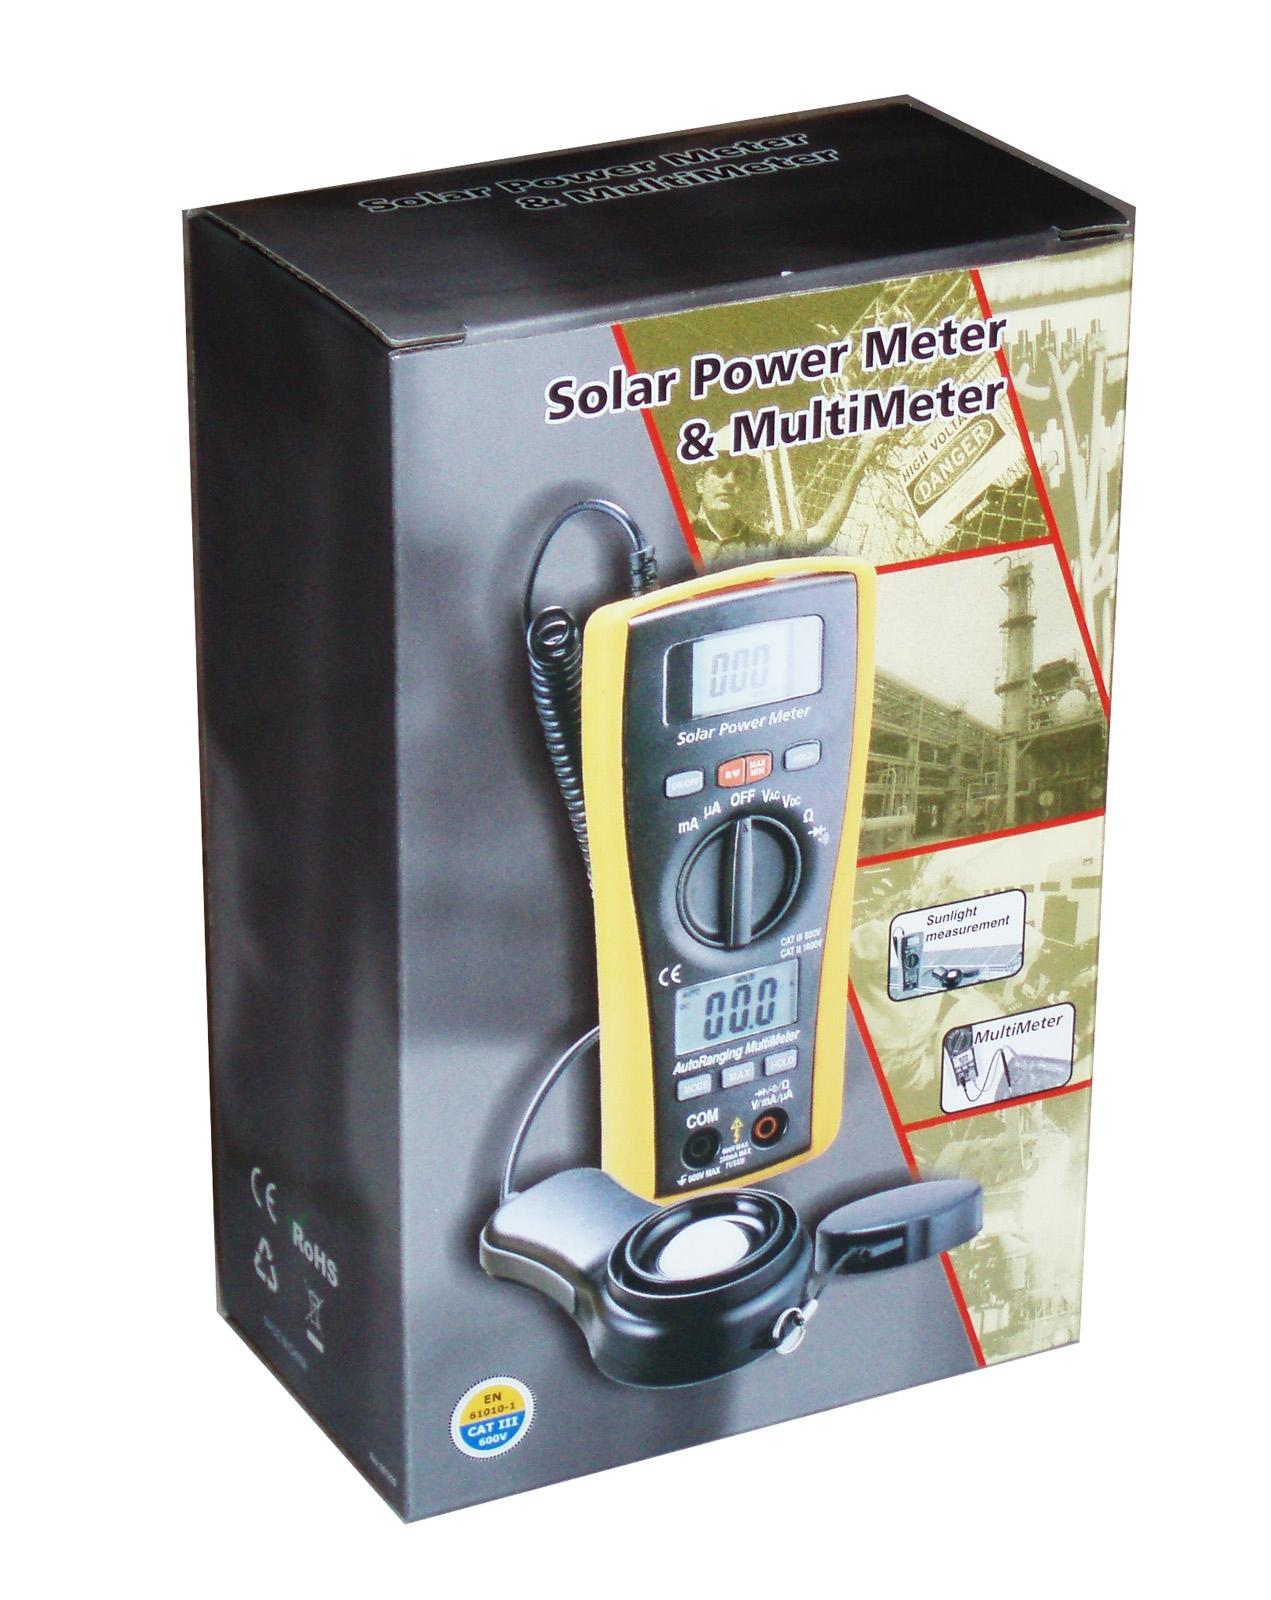 RE LA-1017 Sun Power Solar Energy Sunlight Meter with DMM Digital Multimeter